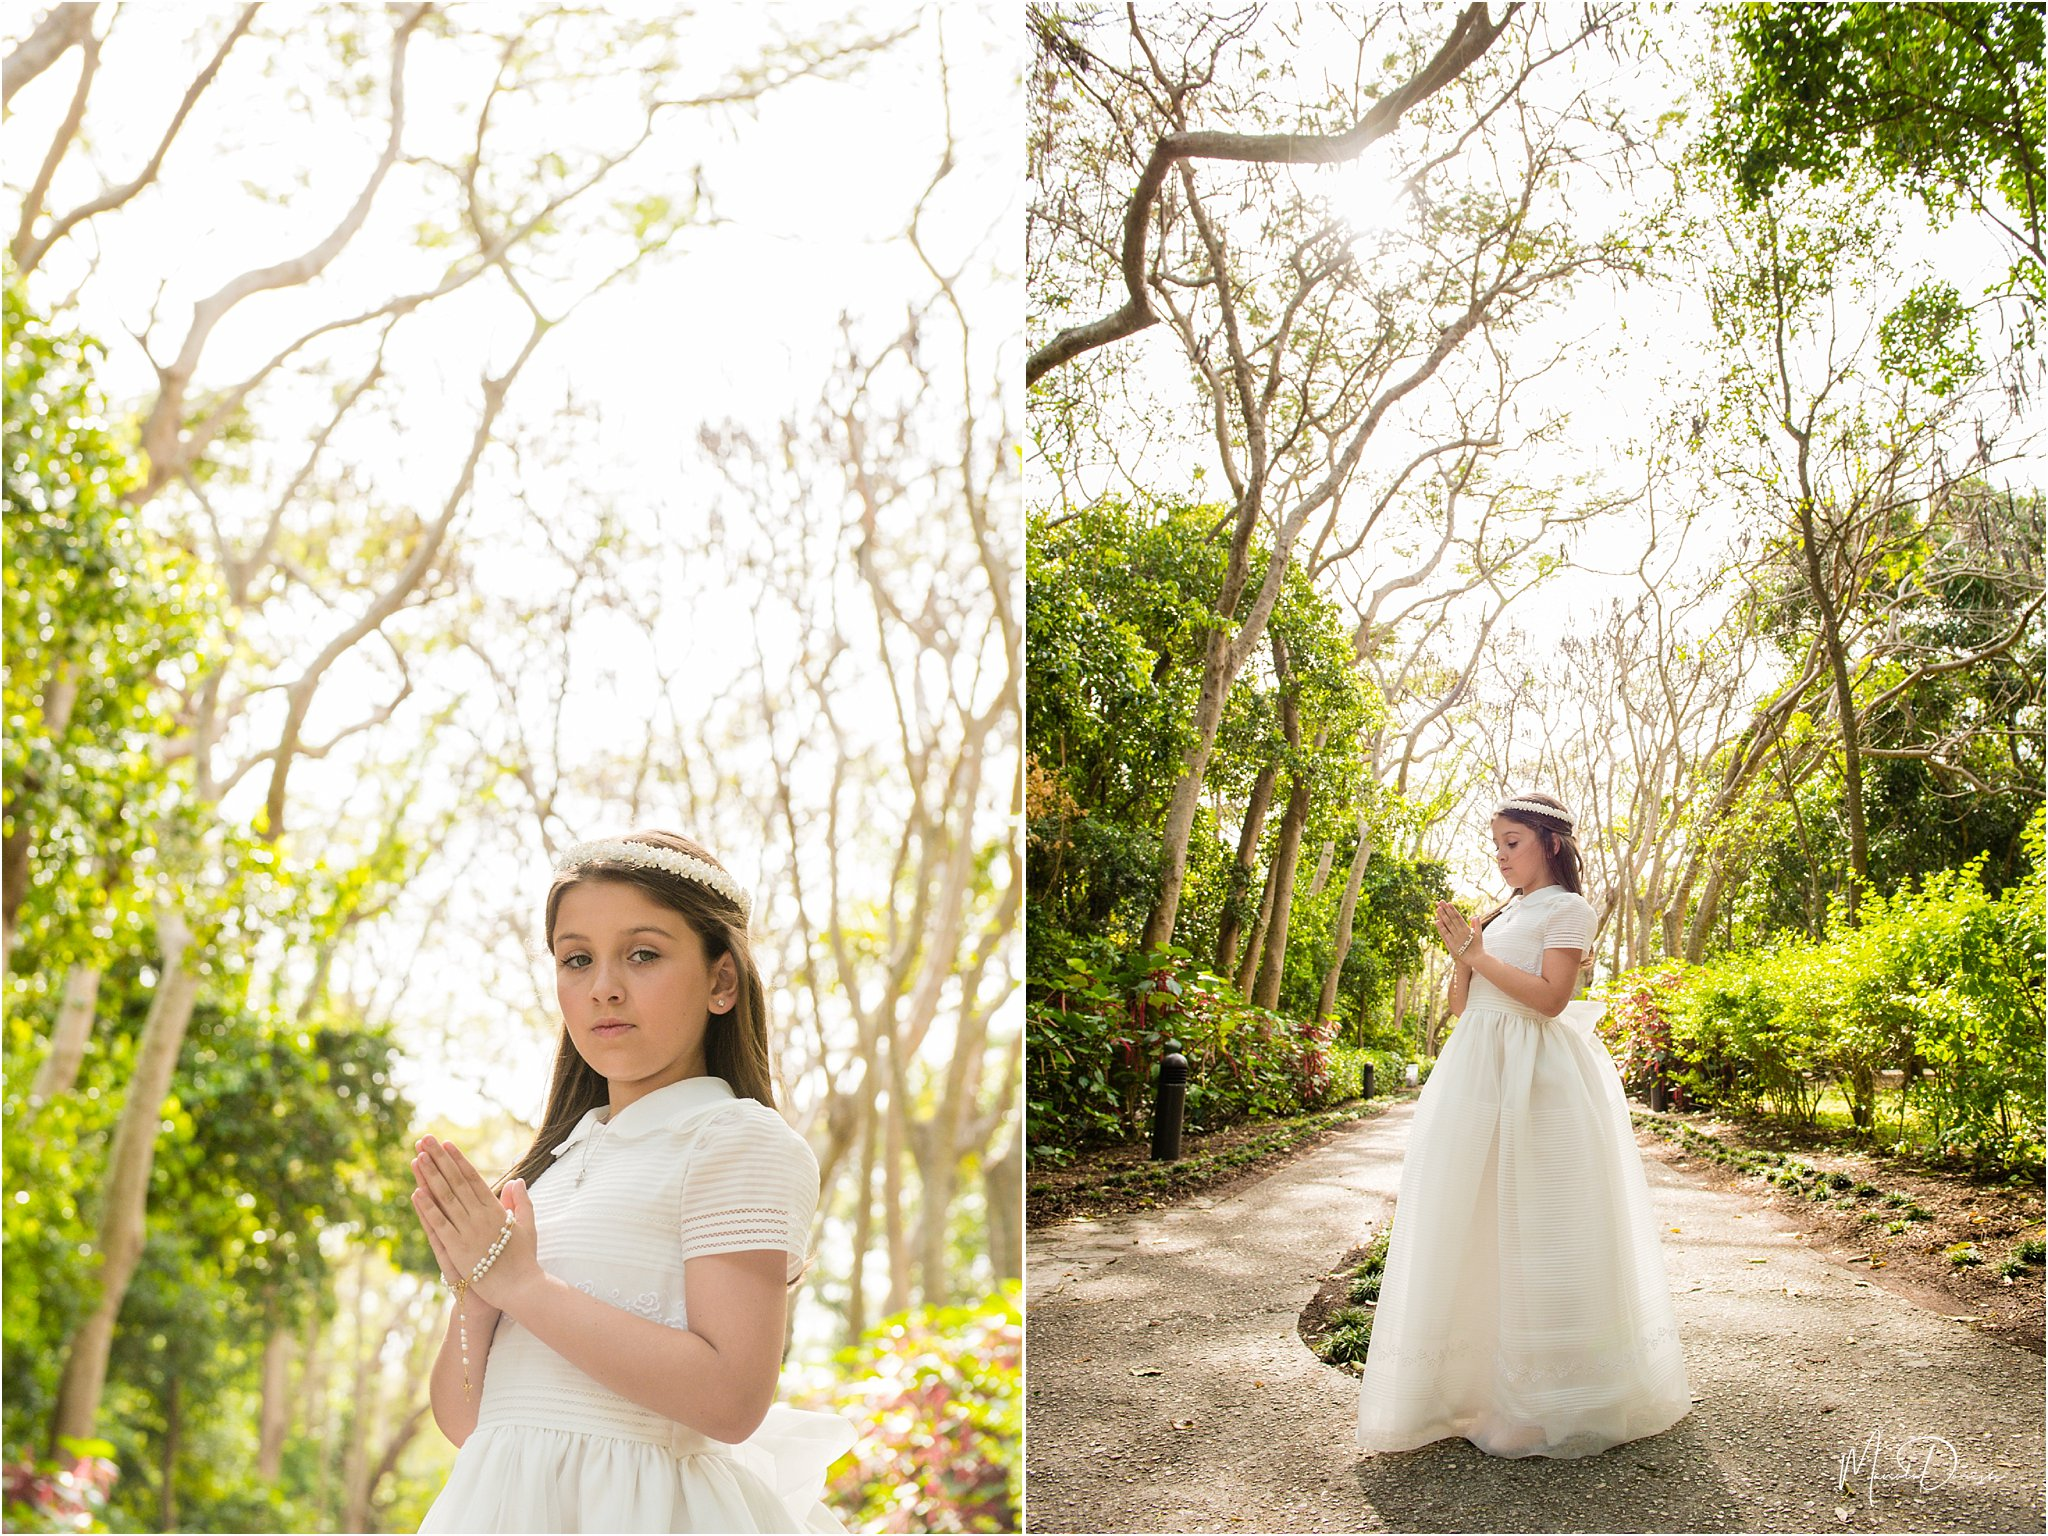 0629_ManoloDoreste_InFocusStudios_Wedding_Family_Photography_Miami_MiamiPhotographer.jpg